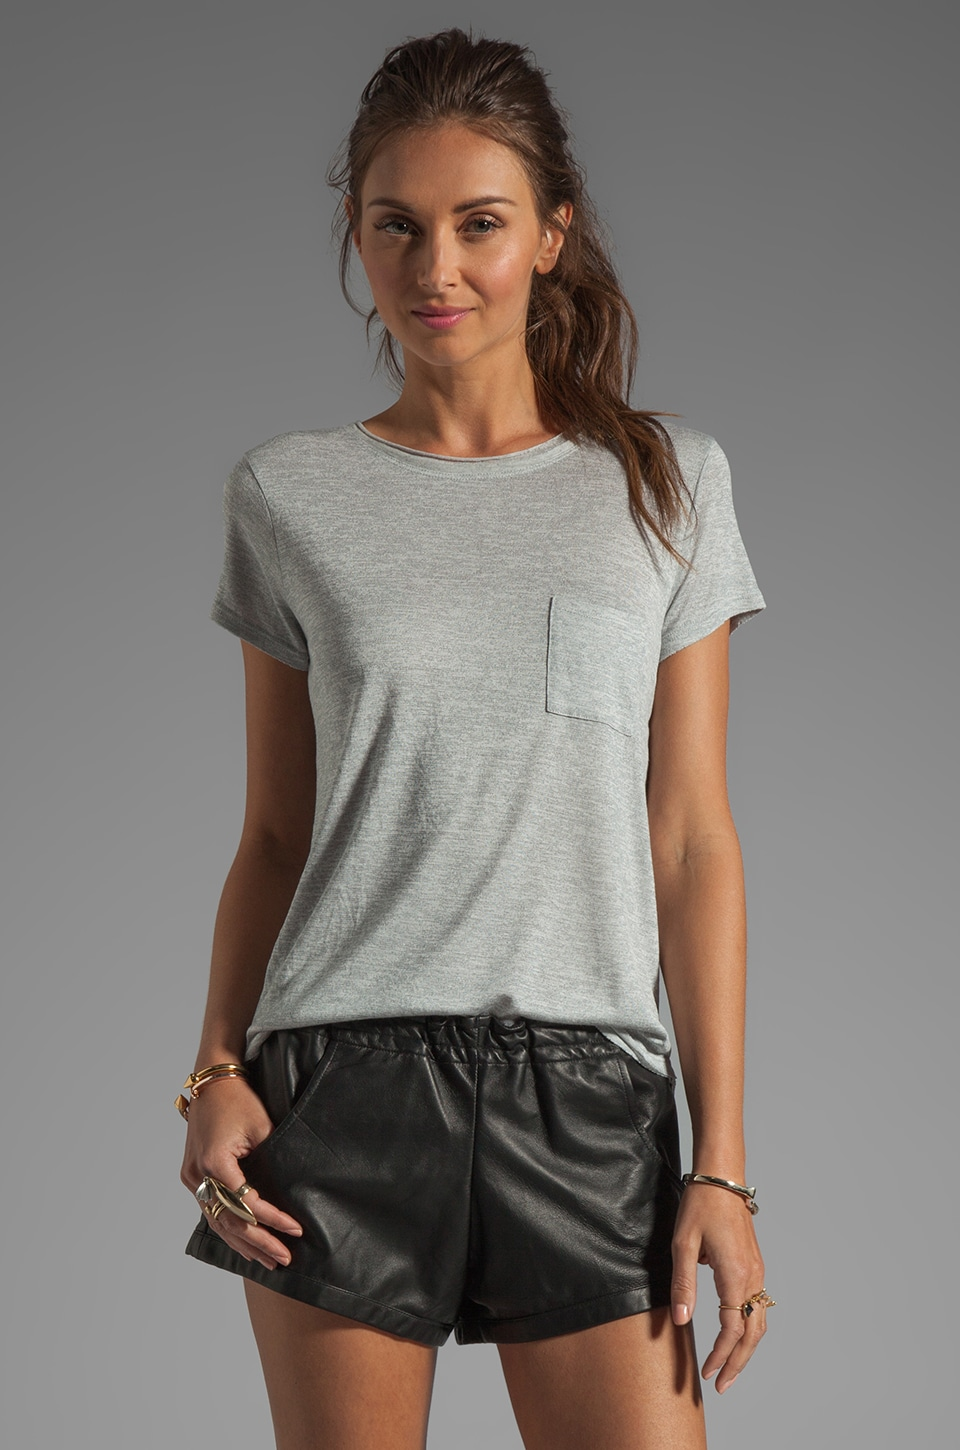 Vince Pocket Tee in Heather Silver